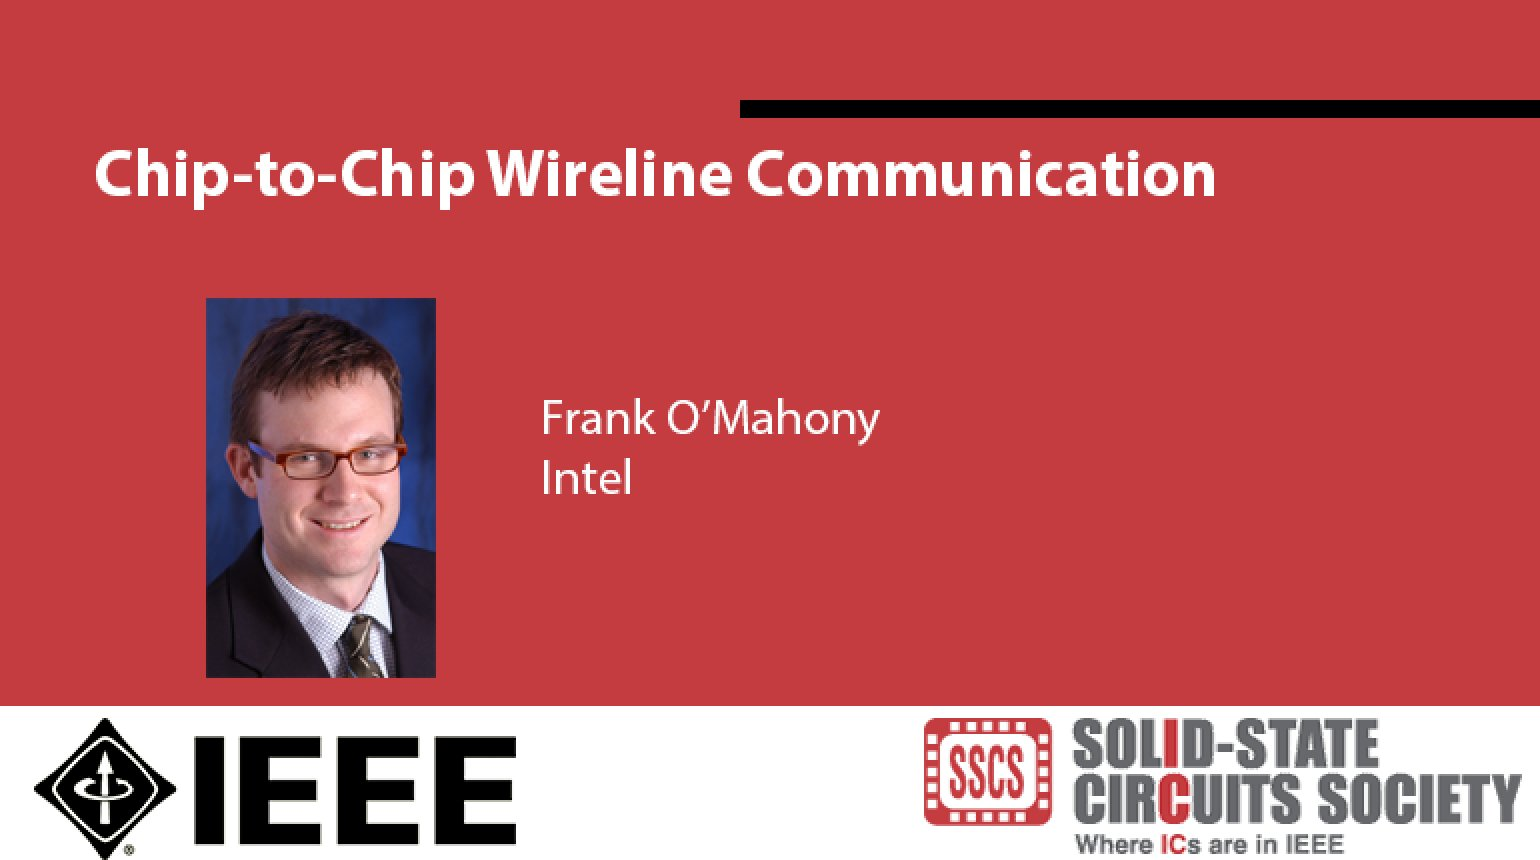 Chip-to-Chip Wireline Communication Video